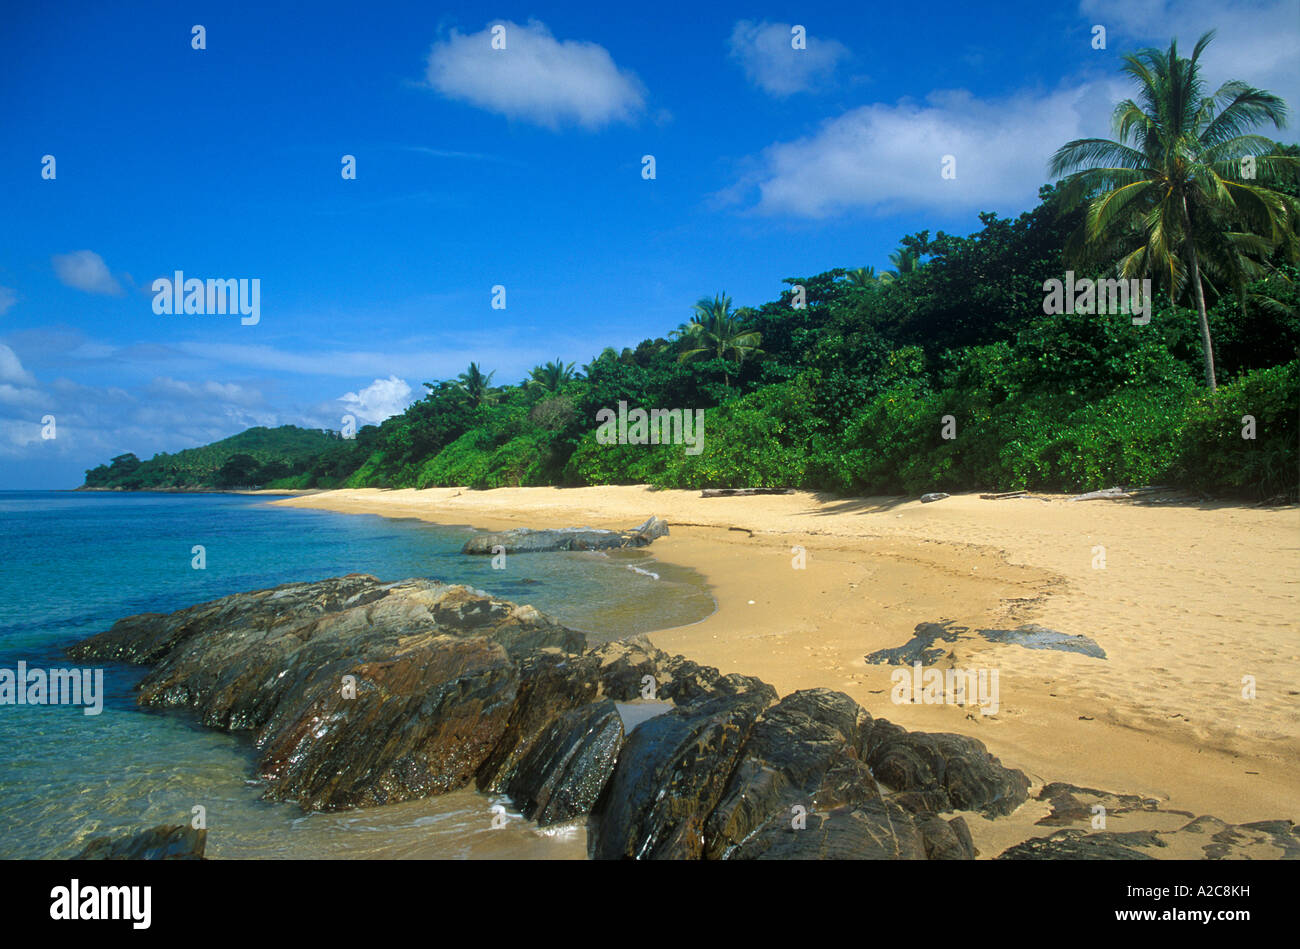 lonely beach on the island Ko Lanta in Thailand - Stock Image